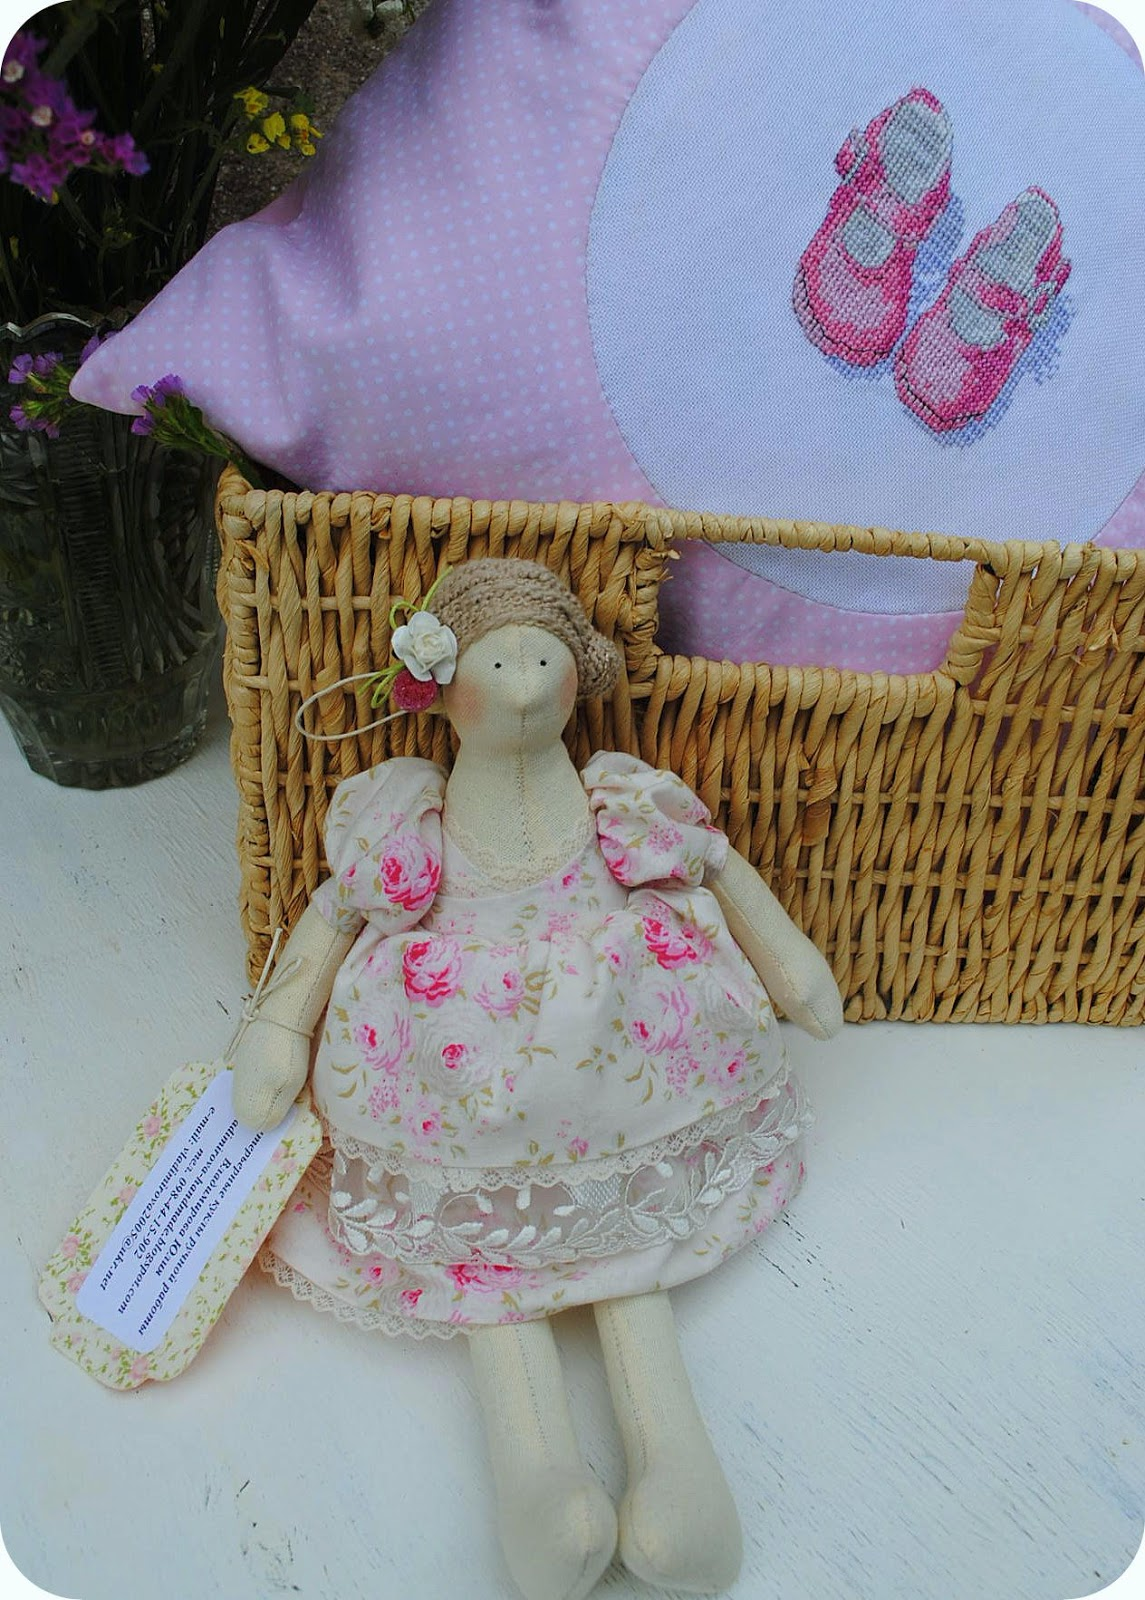 newborn, kids, baby, gift, sewing, embroidery, cross stitch, pink, girl, kids, buy, handmade, shoes, slippers, booties, natural, pillow, fairies, beautiful,doll, tilda, cotton